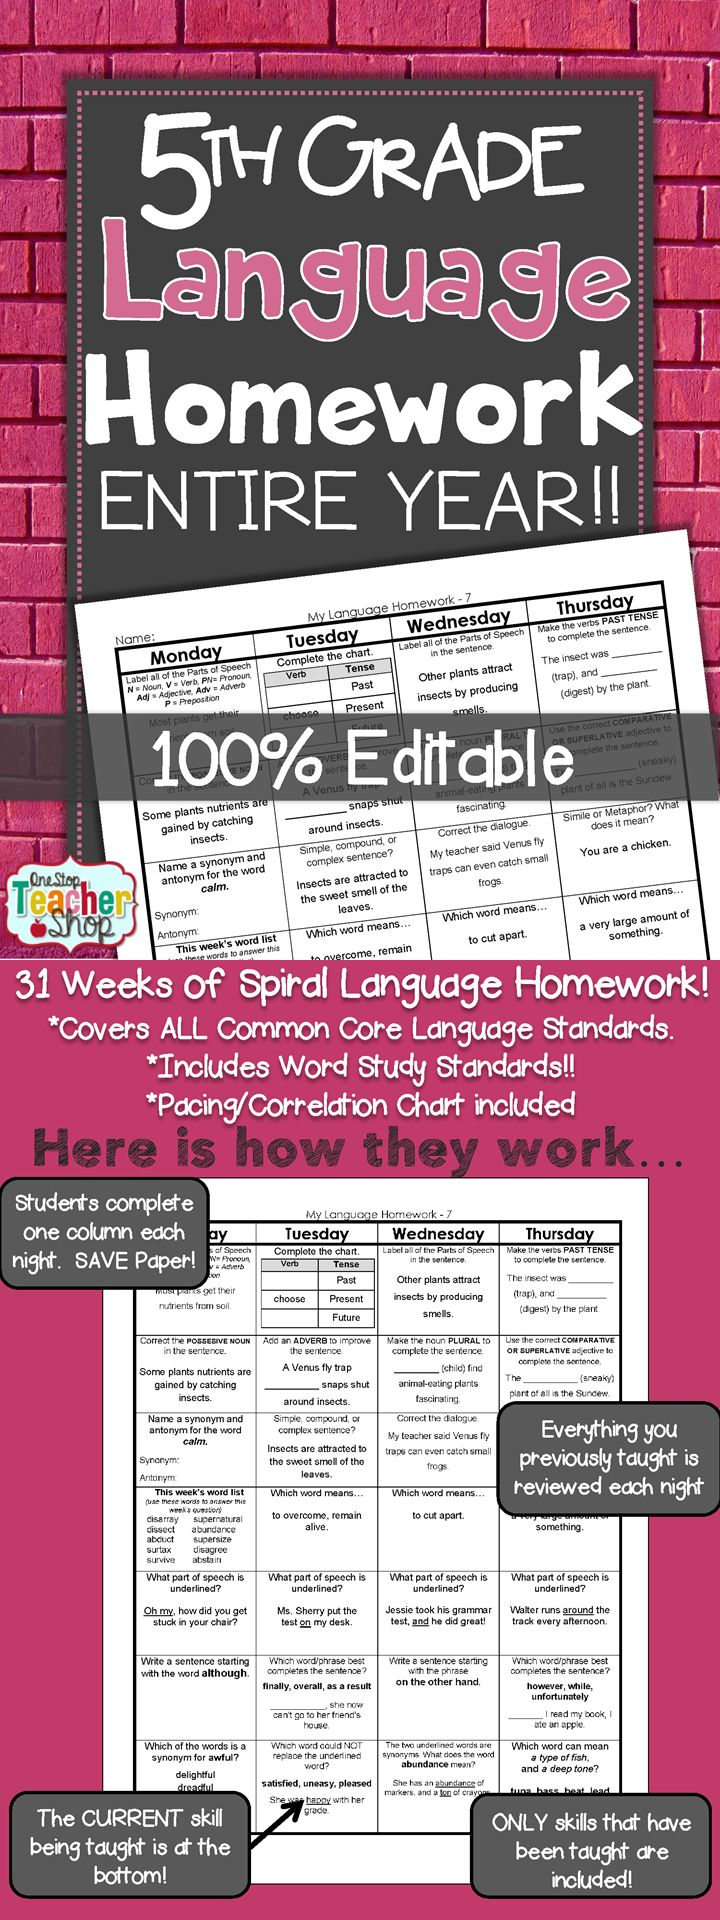 Worksheet 5th Grade Reading Material 1000 ideas about 5th grade reading on pinterest literacy spiral language homework morning work or centers for the entire year of fifth grade